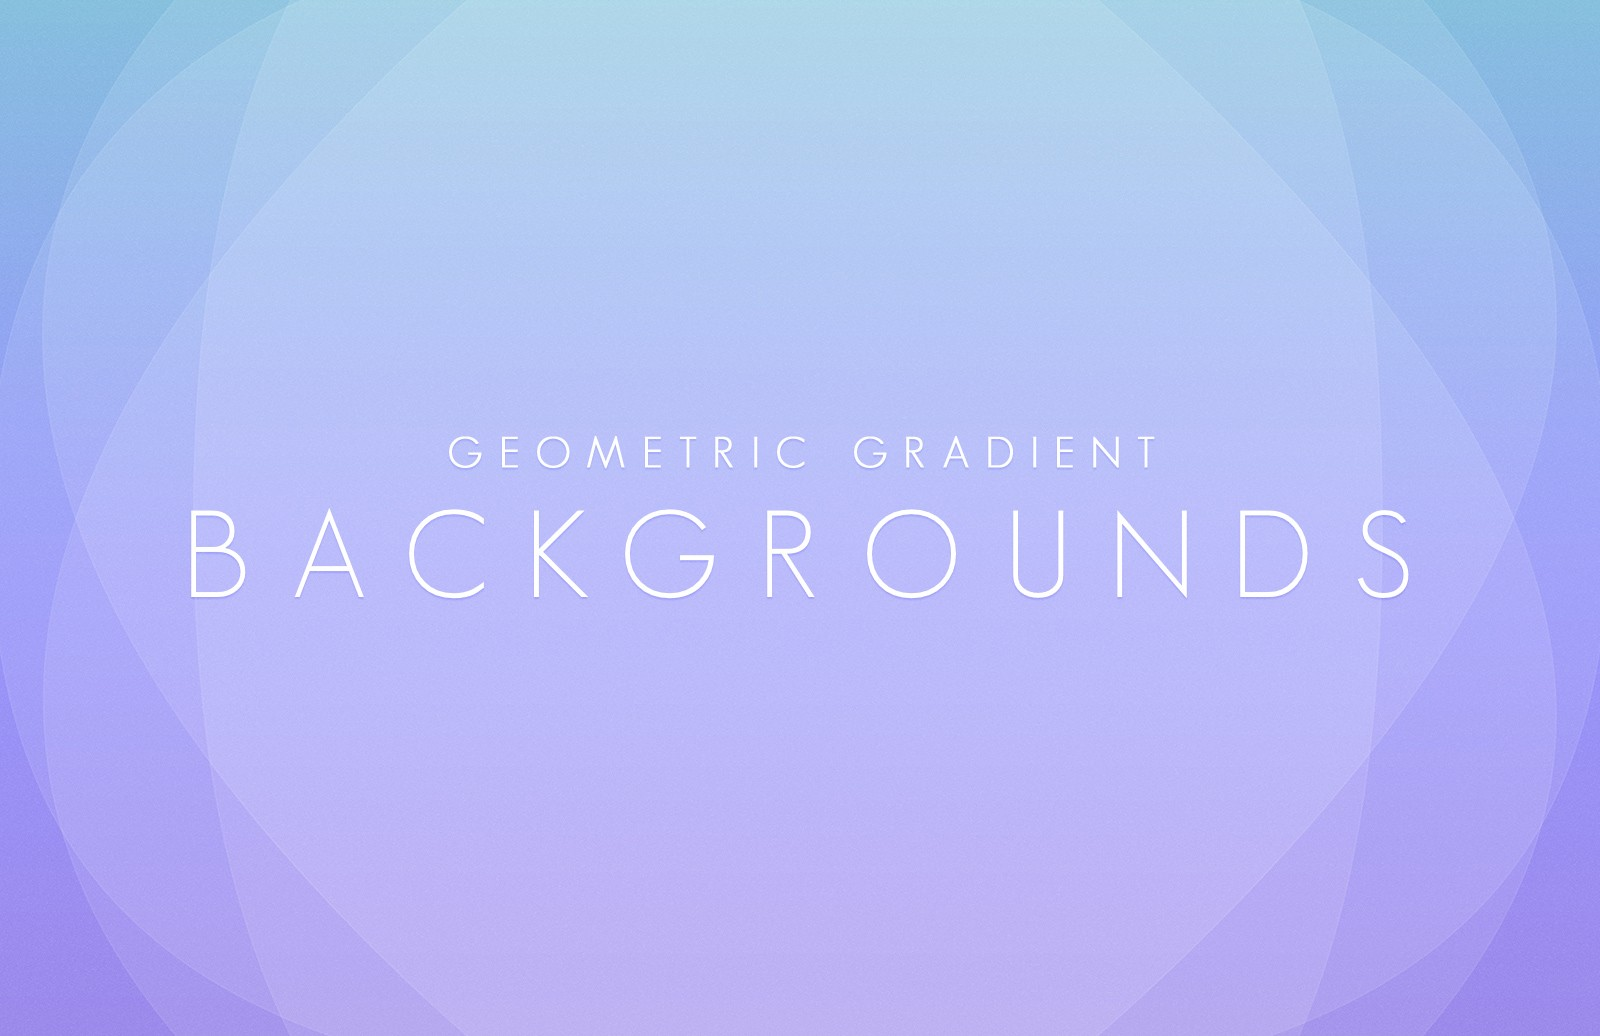 Geometric Gradient Backgrounds 2